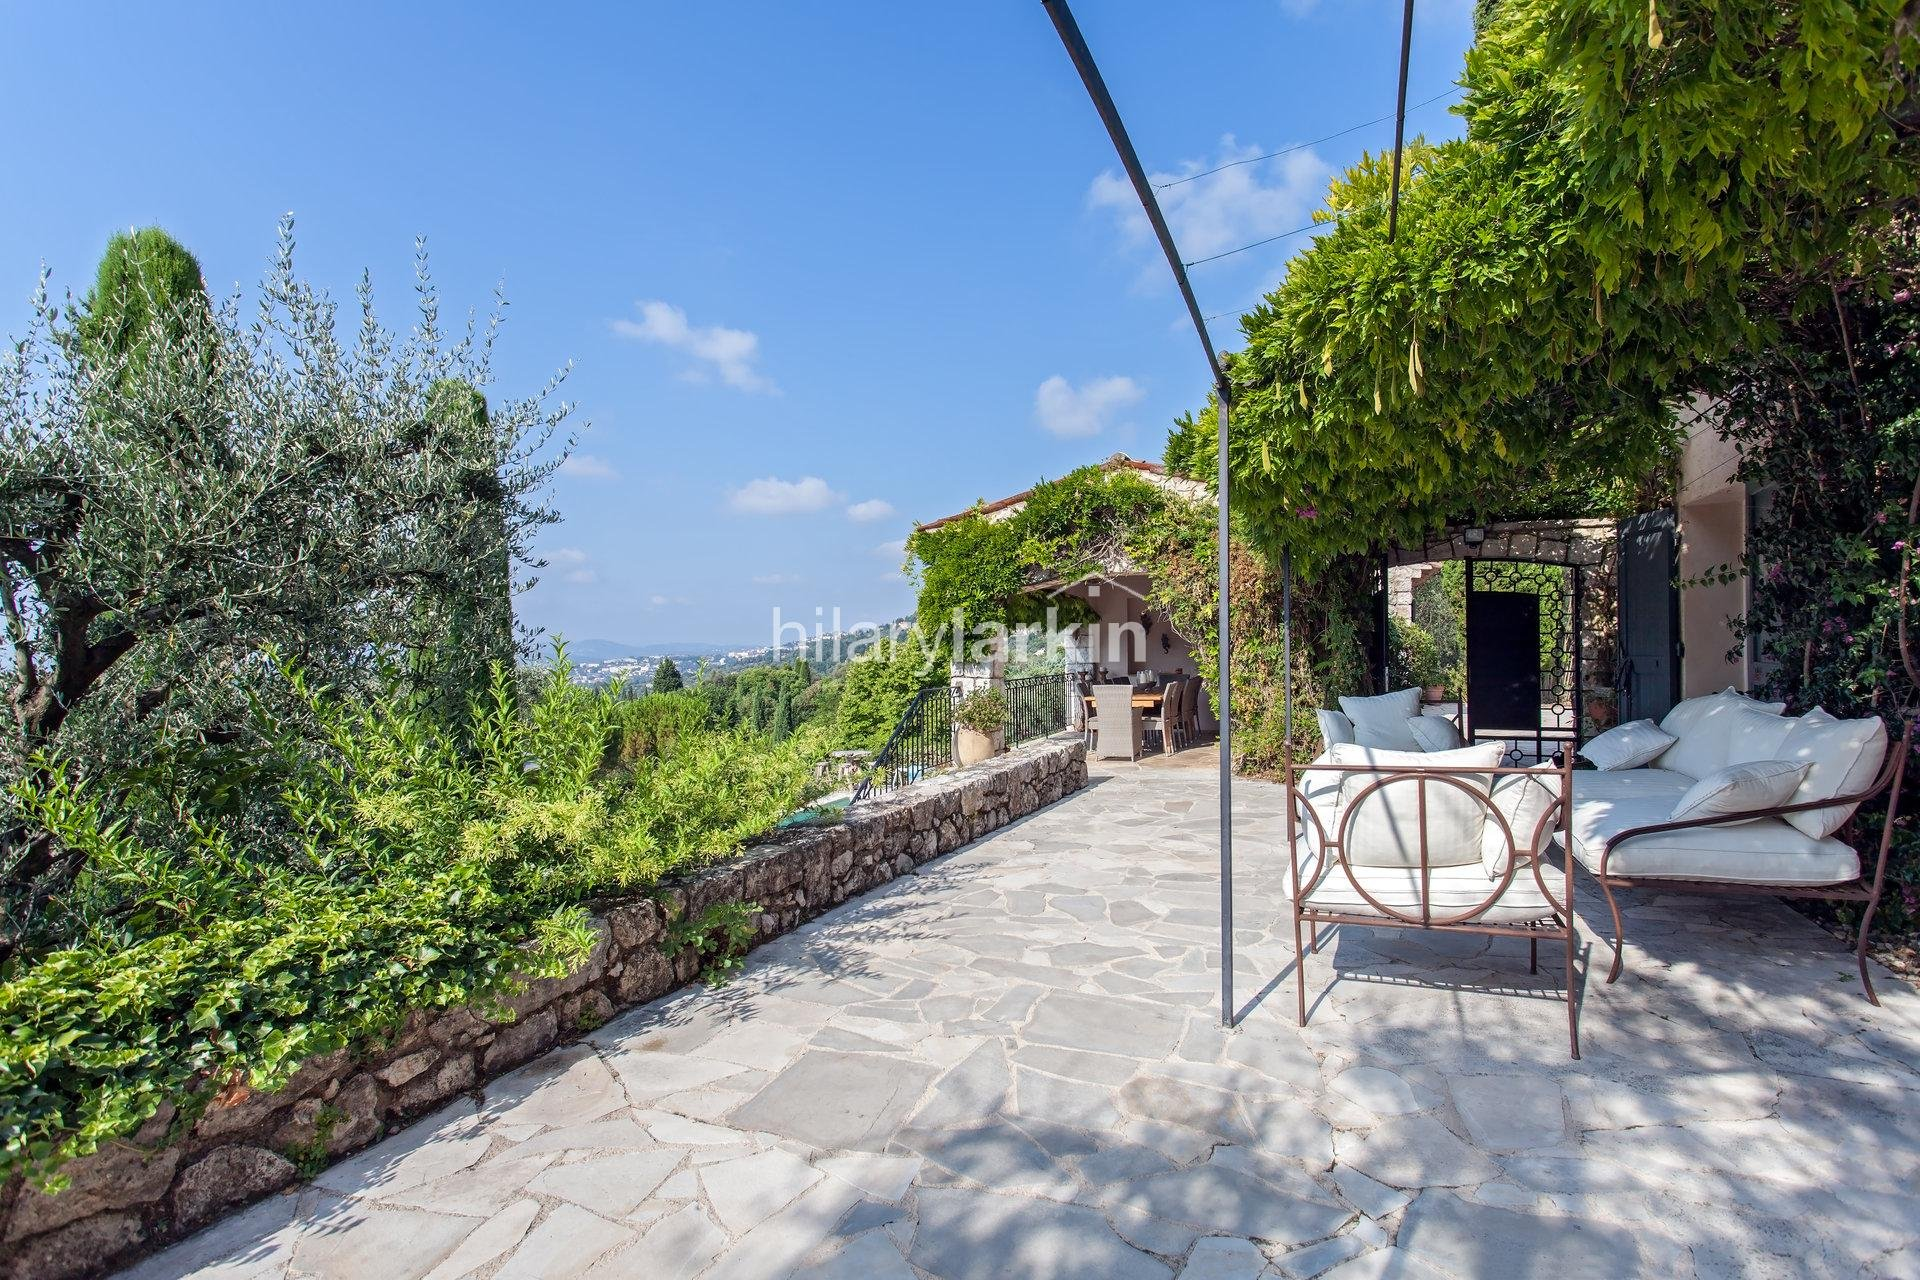 Magagnosc - Exceptional Provencal style farmhouse with panoramic sea and countryside views